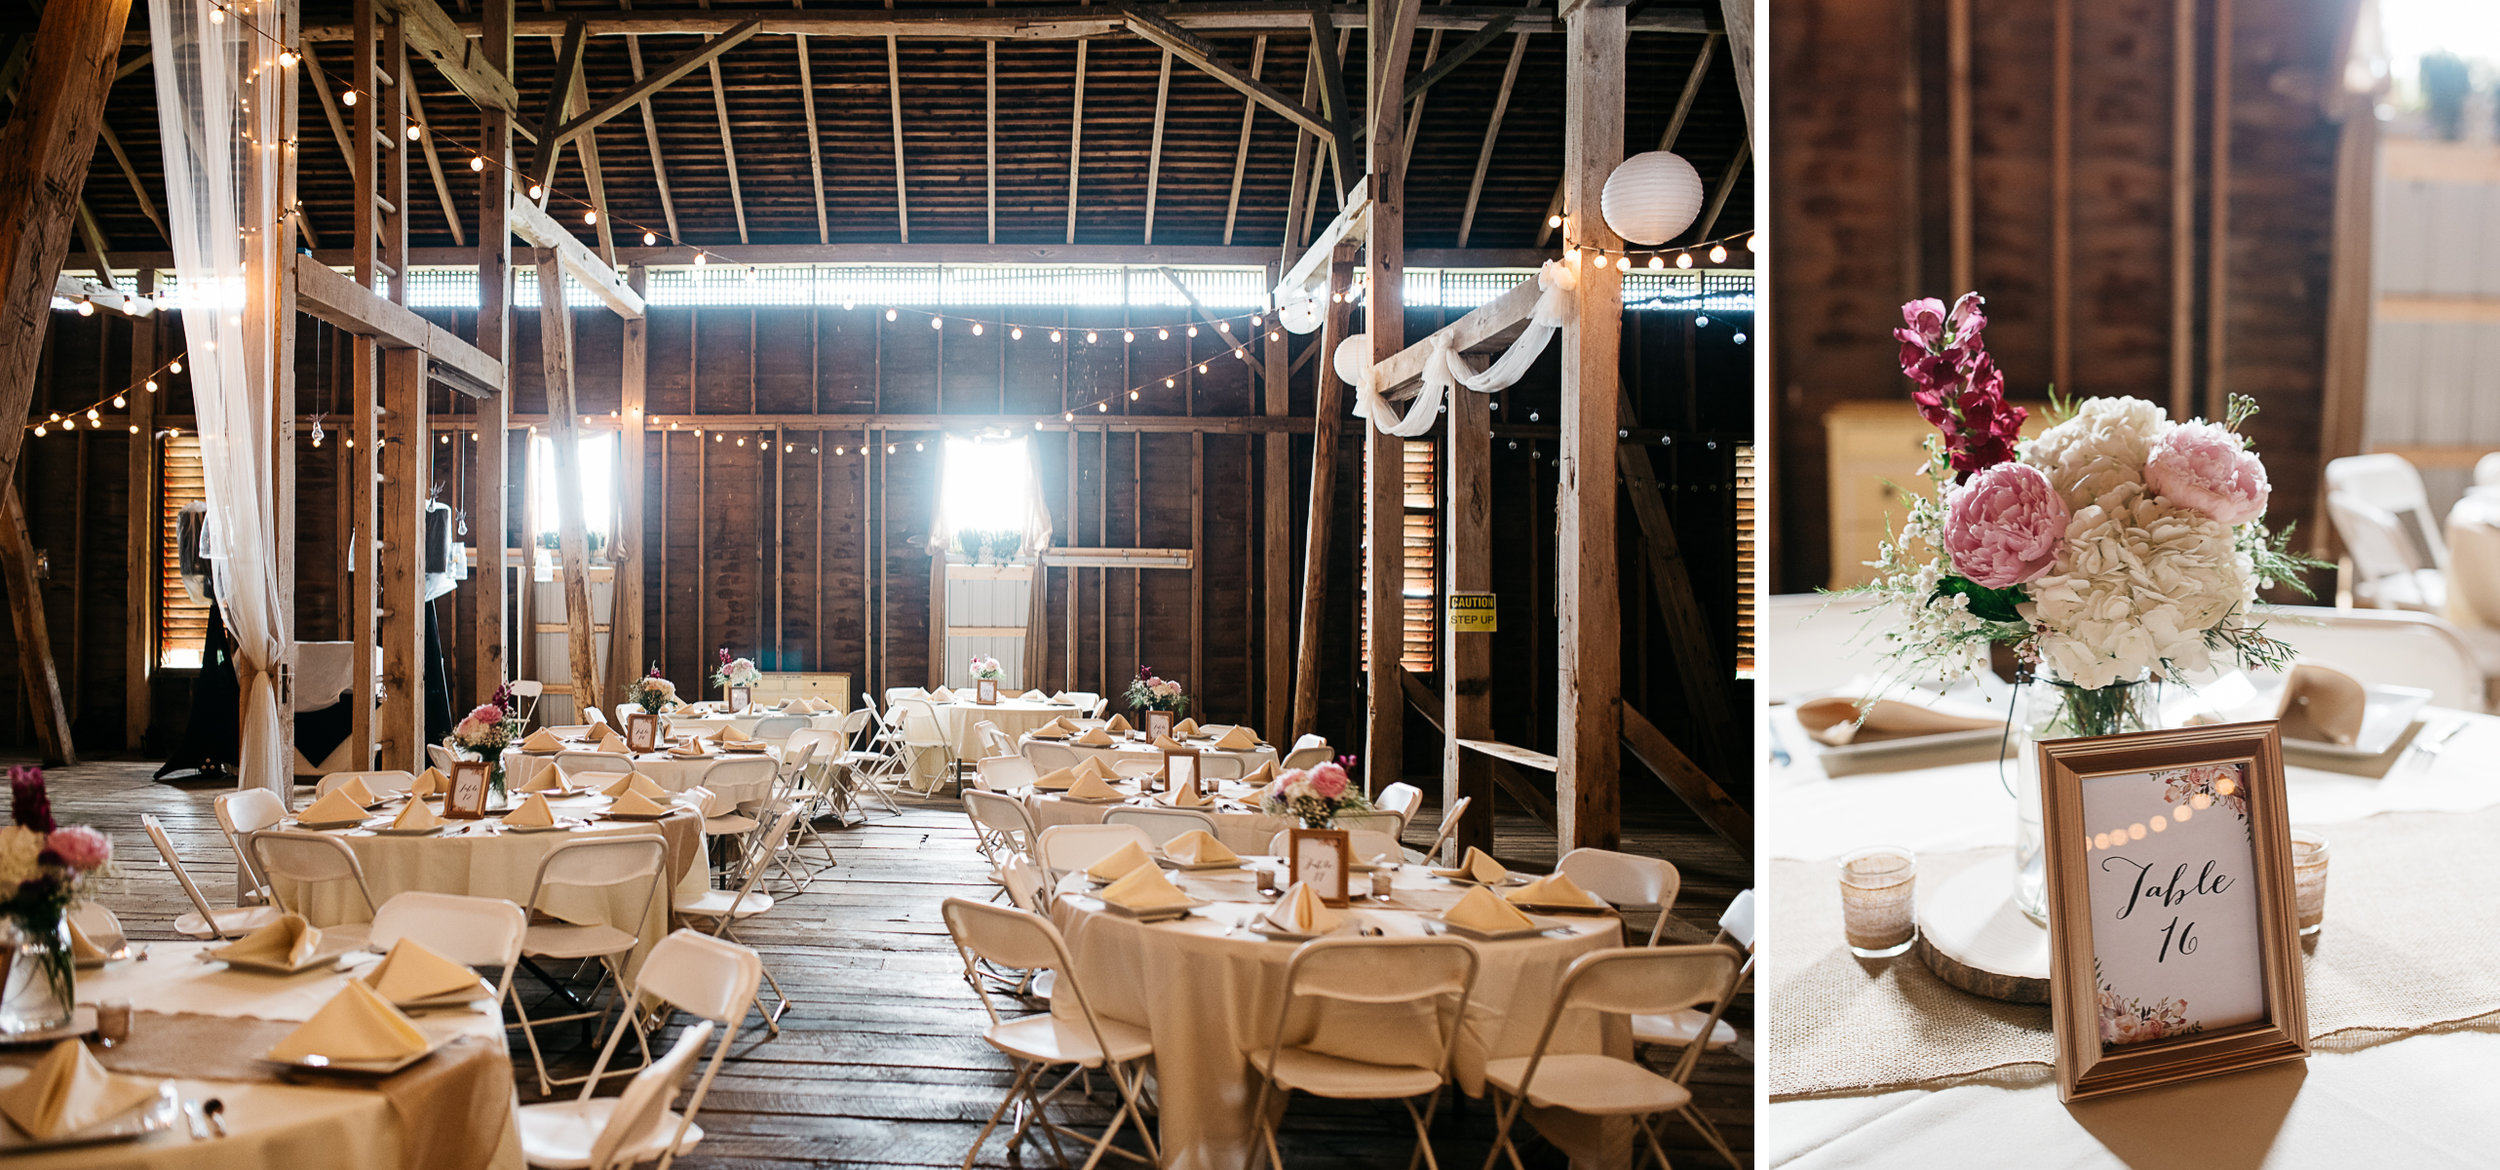 Event Barn at Highland Farms, details, Somerset PA barn weddings.jpg